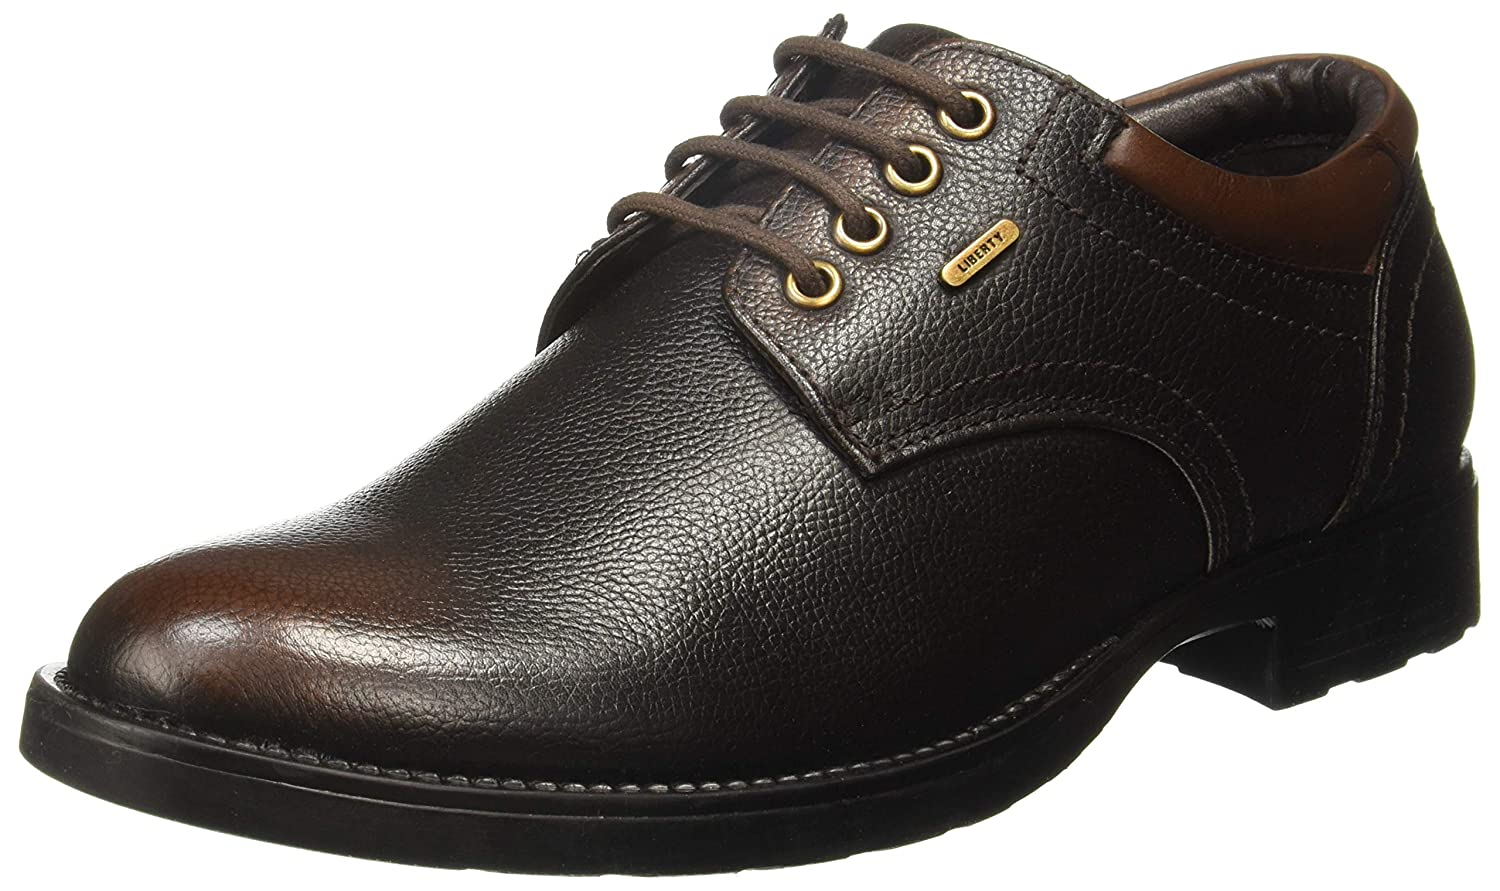 Men's GAS-C17 Formal Shoes at Amazon.in